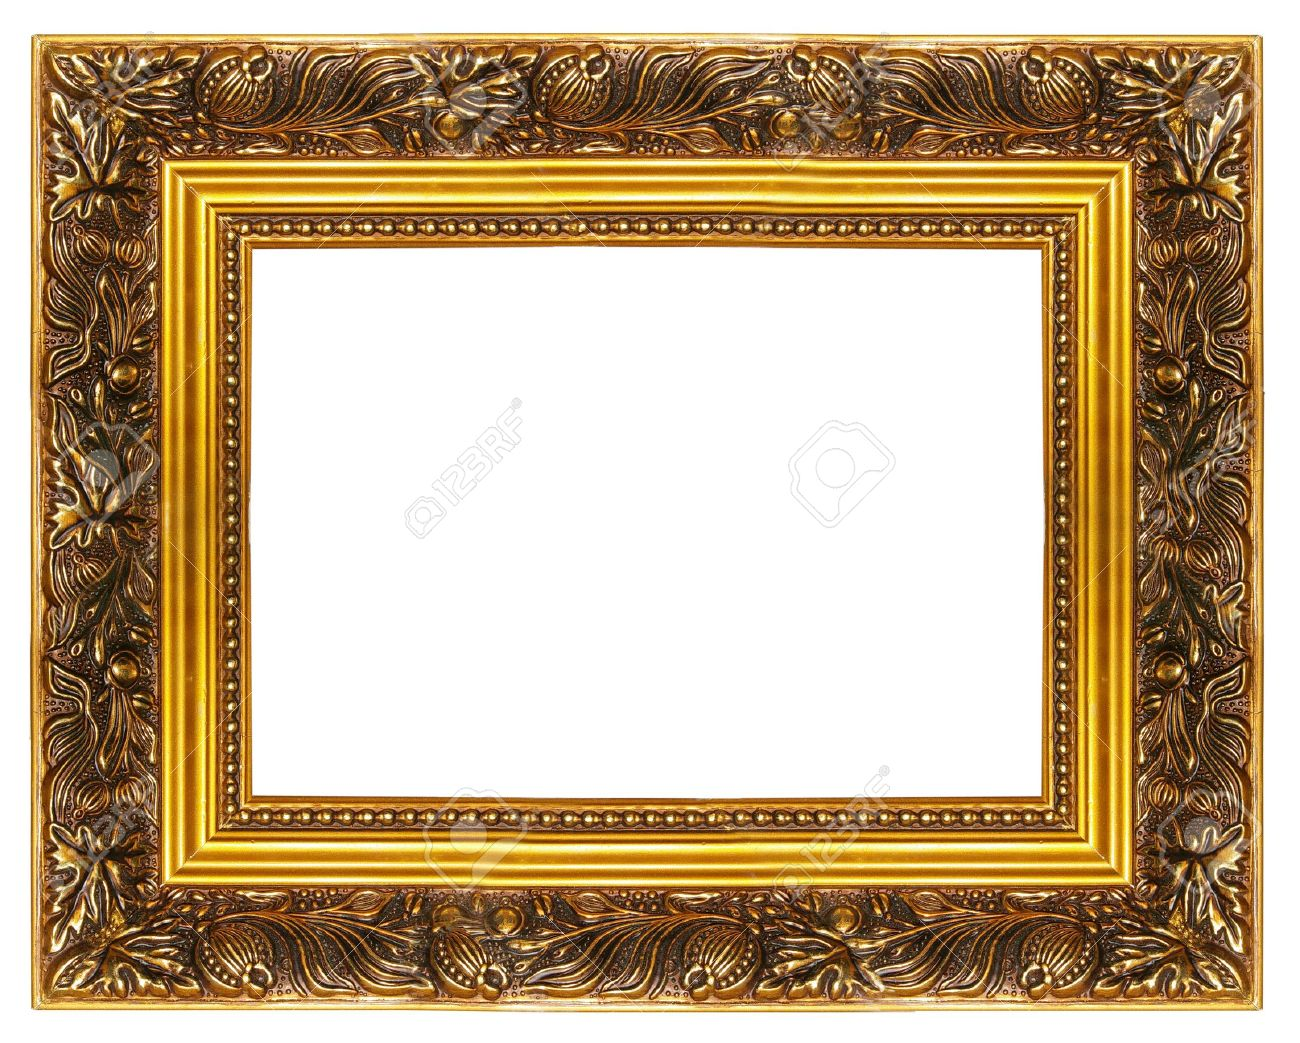 Classic Frame From My Frame Collection Stock Photo, Picture And ...